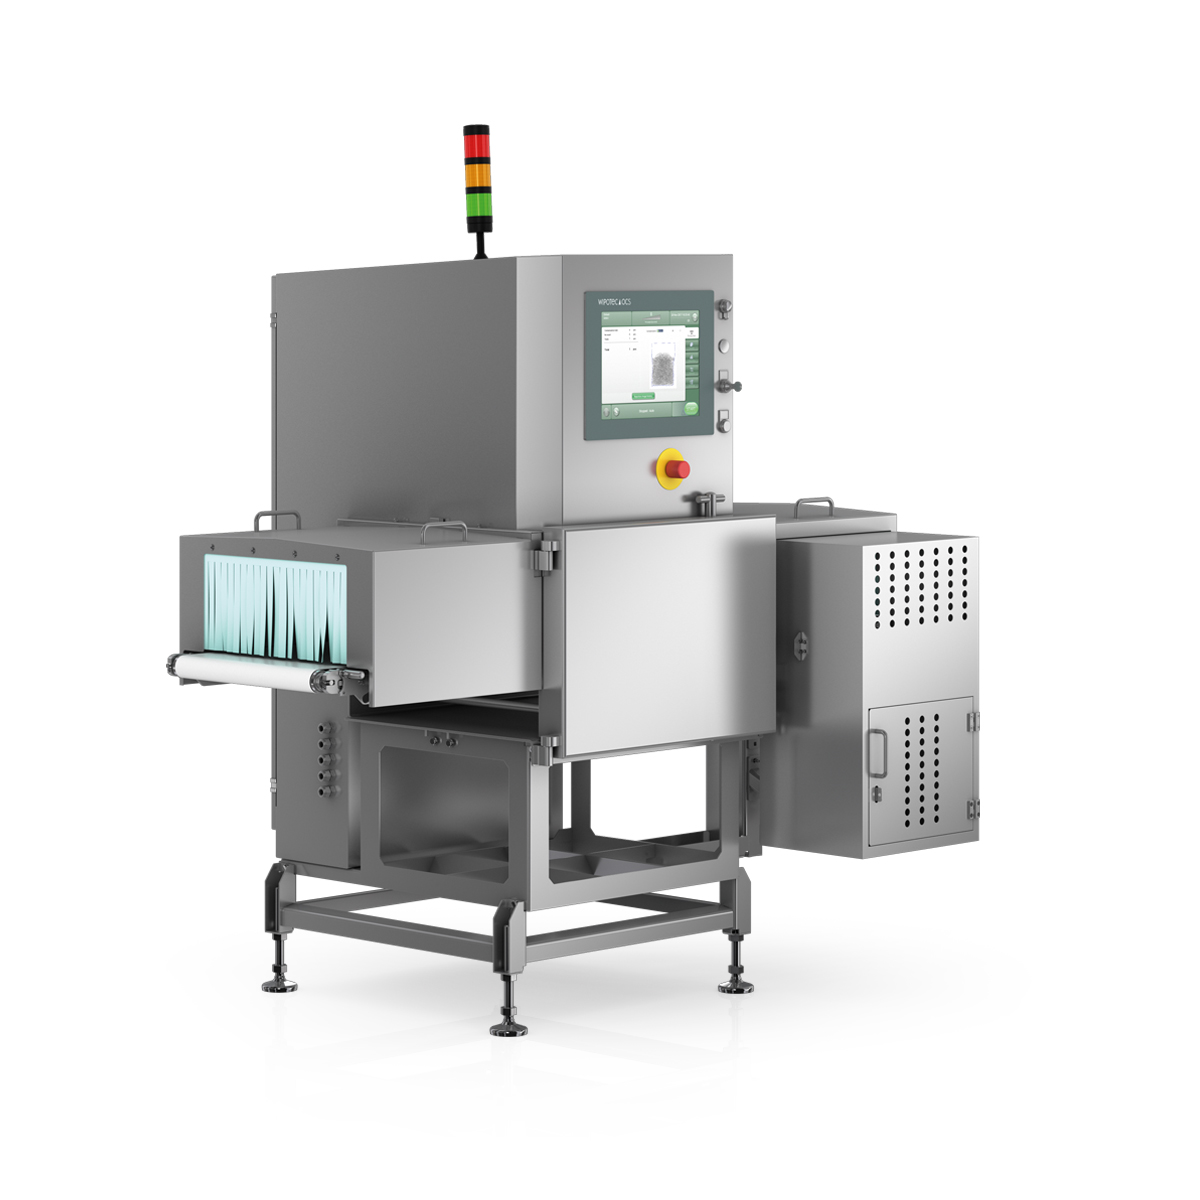 x-ray-inspection-system-sc-e-4000-left-view